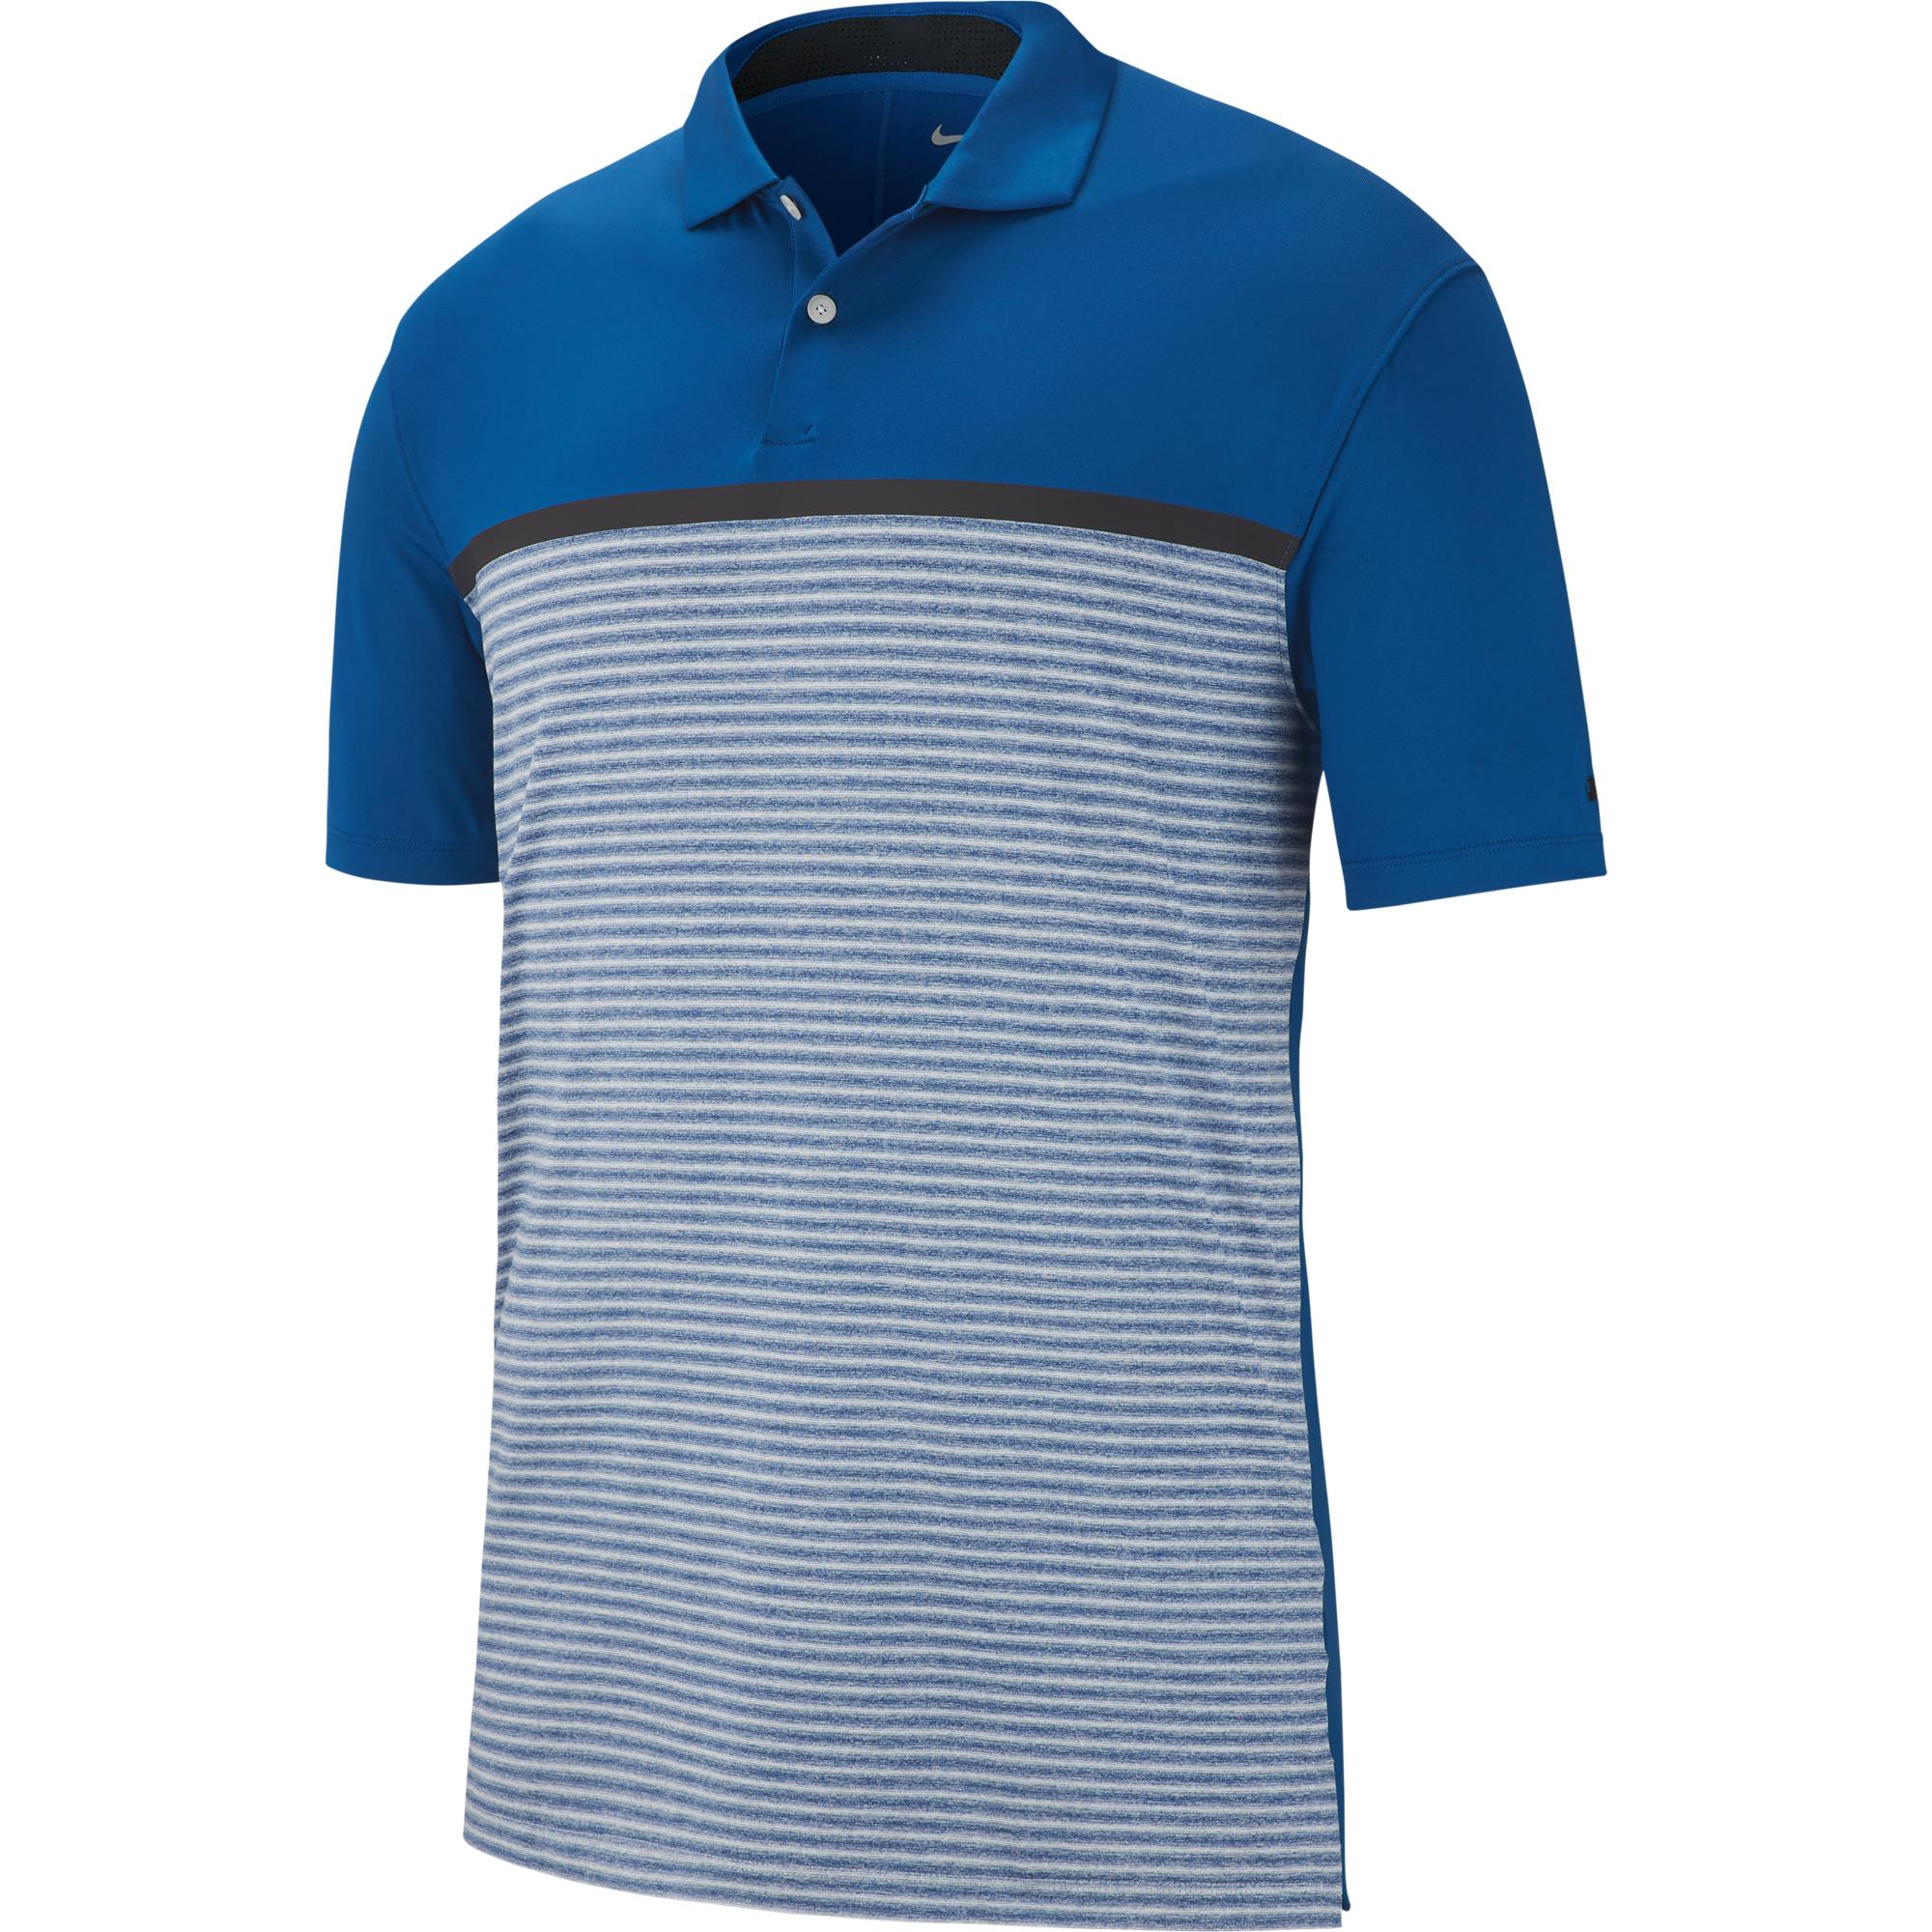 7dc888ec3 Men's TW Dri-FIT Vapor Striped Short Sleeve Shirt | NIKE | Golf Town Limited